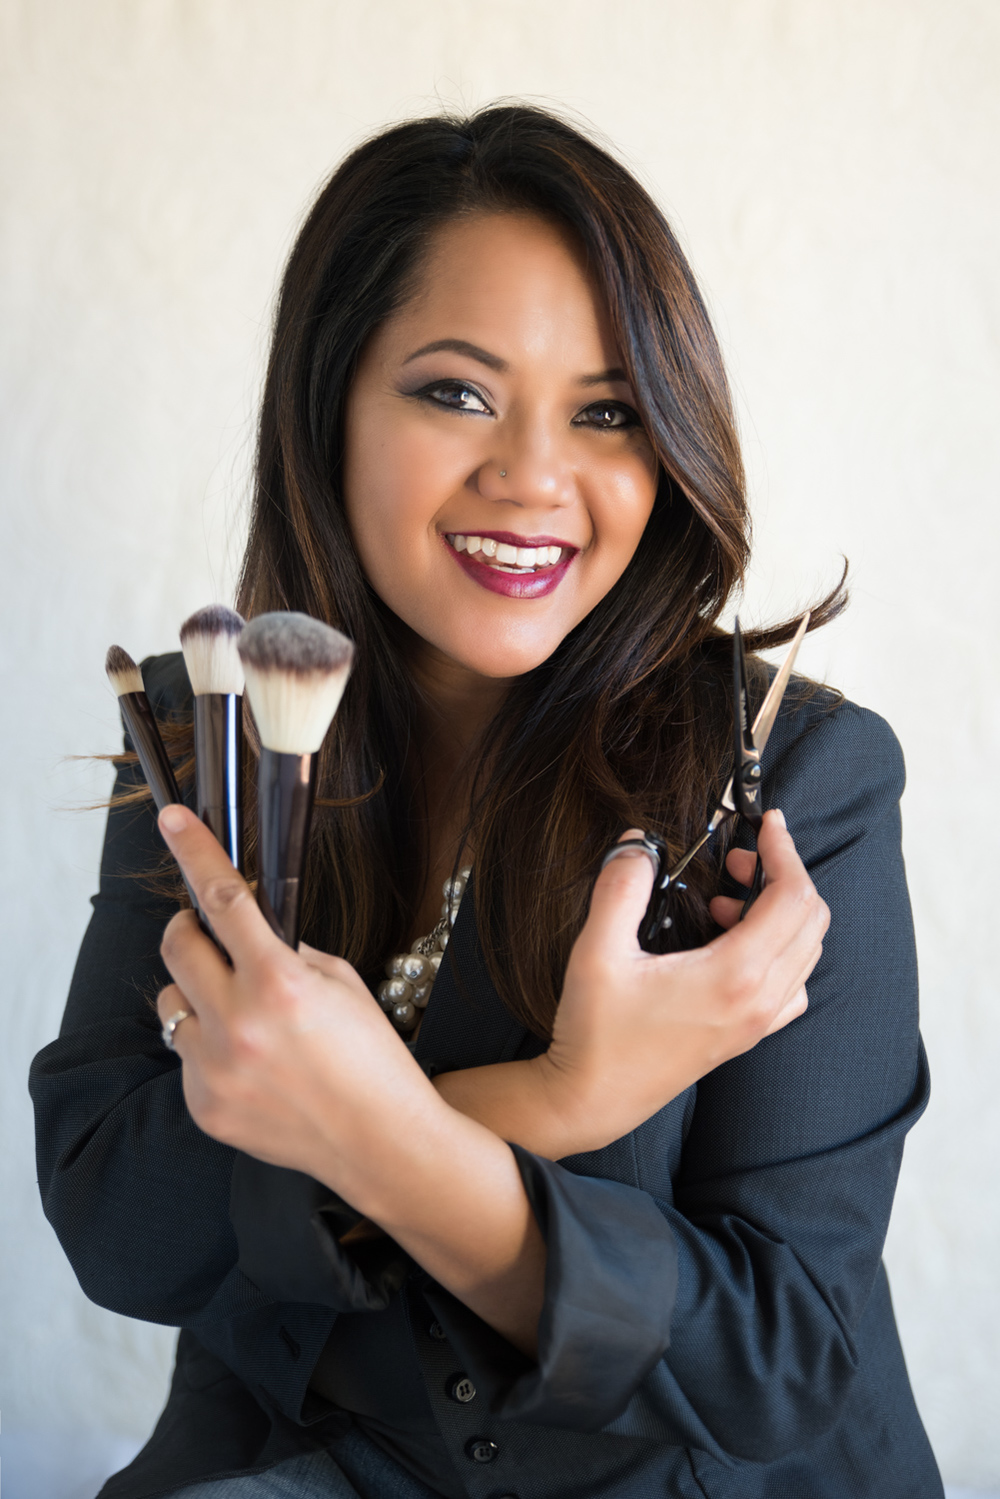 personal branding portrait of hair and make up artist holding her tools